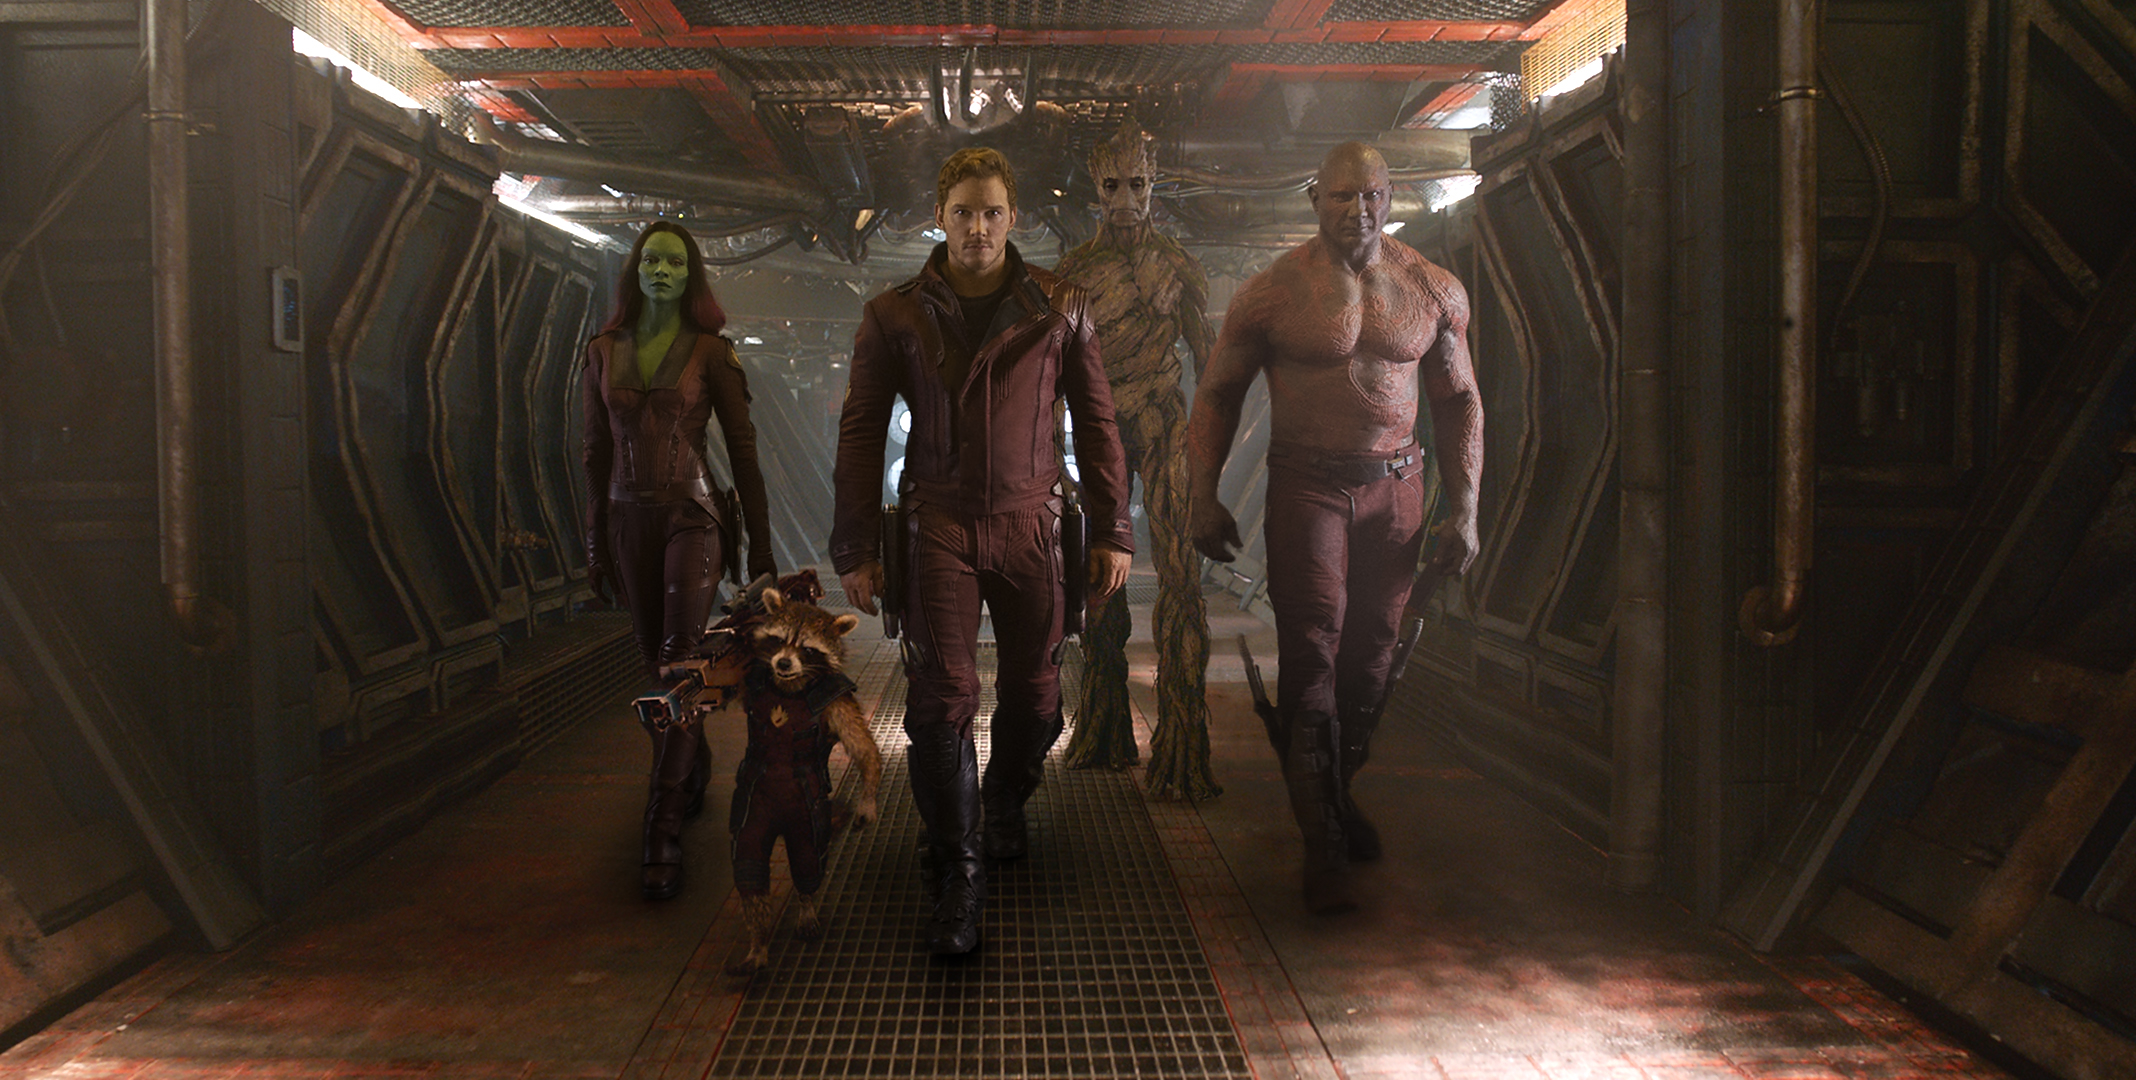 3650073-guardians-of-the-galaxy-hi-res-photo-1-2.jpg